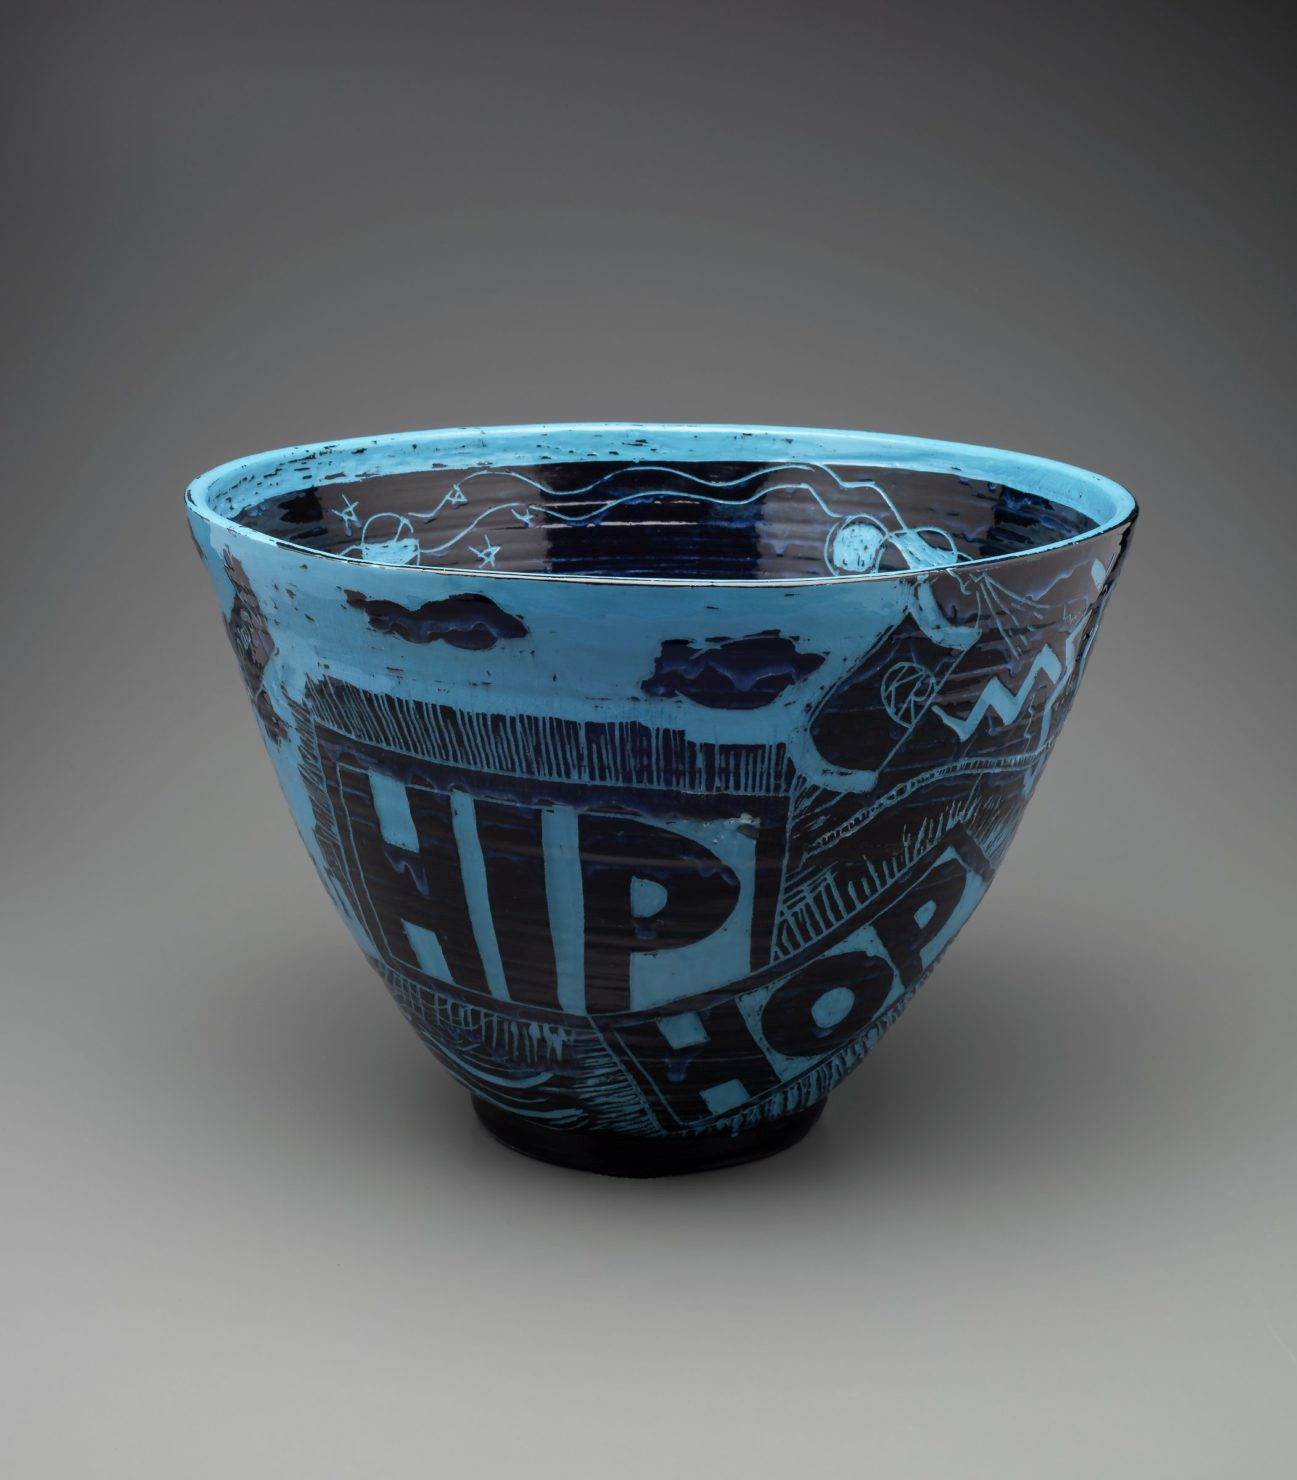 Black and blue ceramic bowl with words related to hip hop music in Atlanta.